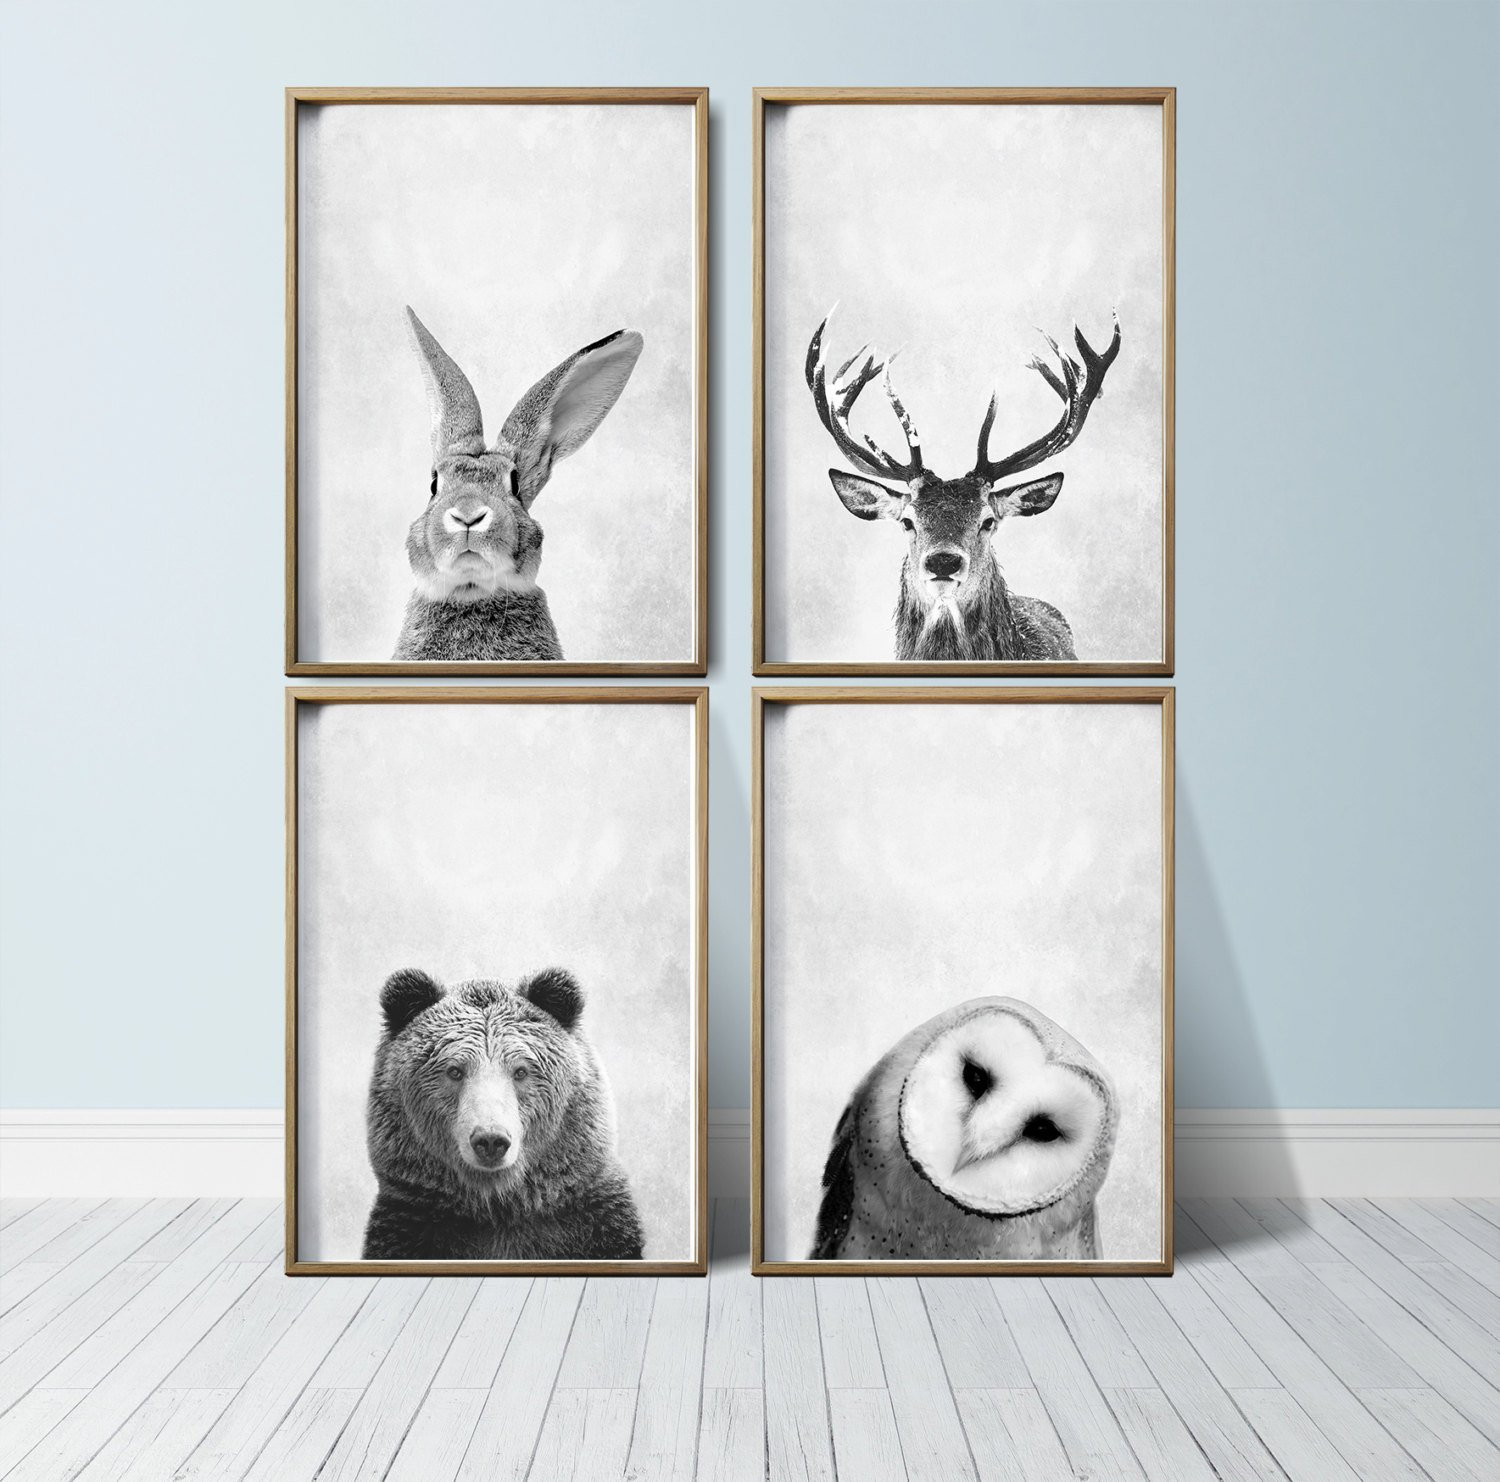 Best ideas about Wall Art Prints . Save or Pin Nursery Wall Art Animal Print Art Woodland Nursery Decor Now.